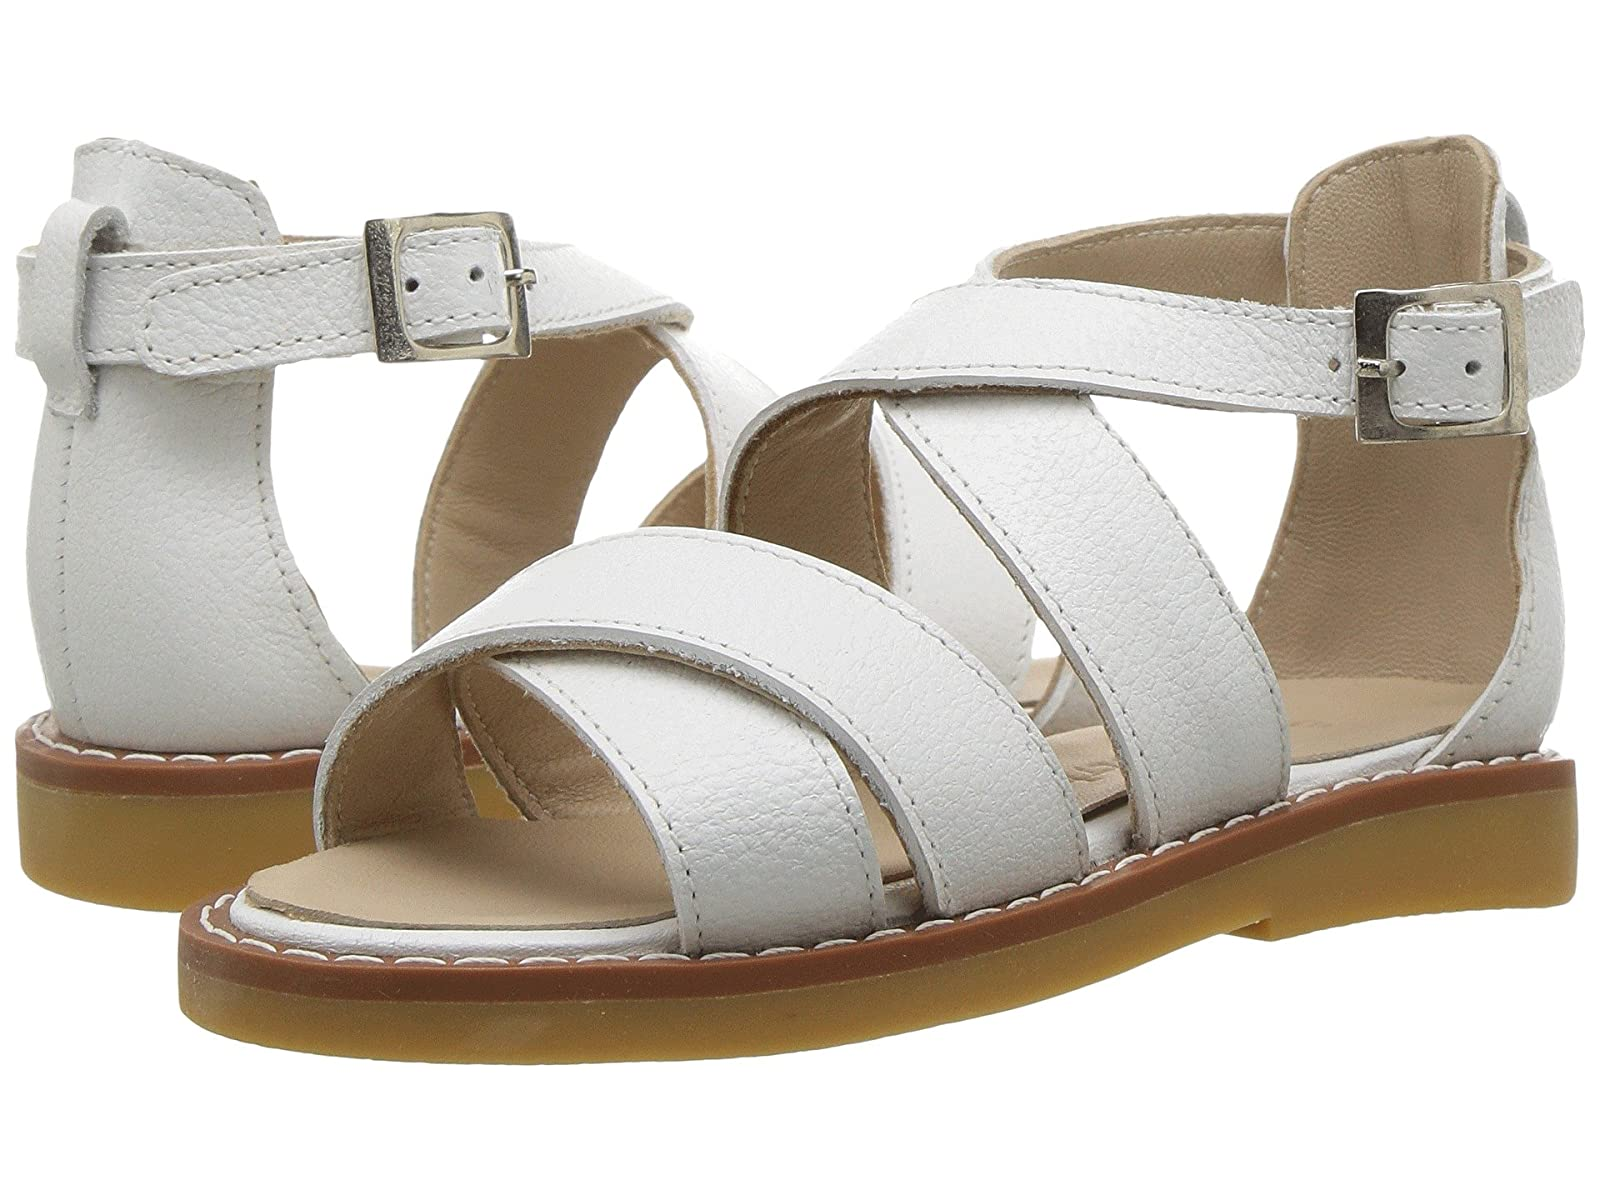 Elephantito Cecil Crossed Sandal (Toddler/Little Kid/Big Kid)Atmospheric grades have affordable shoes